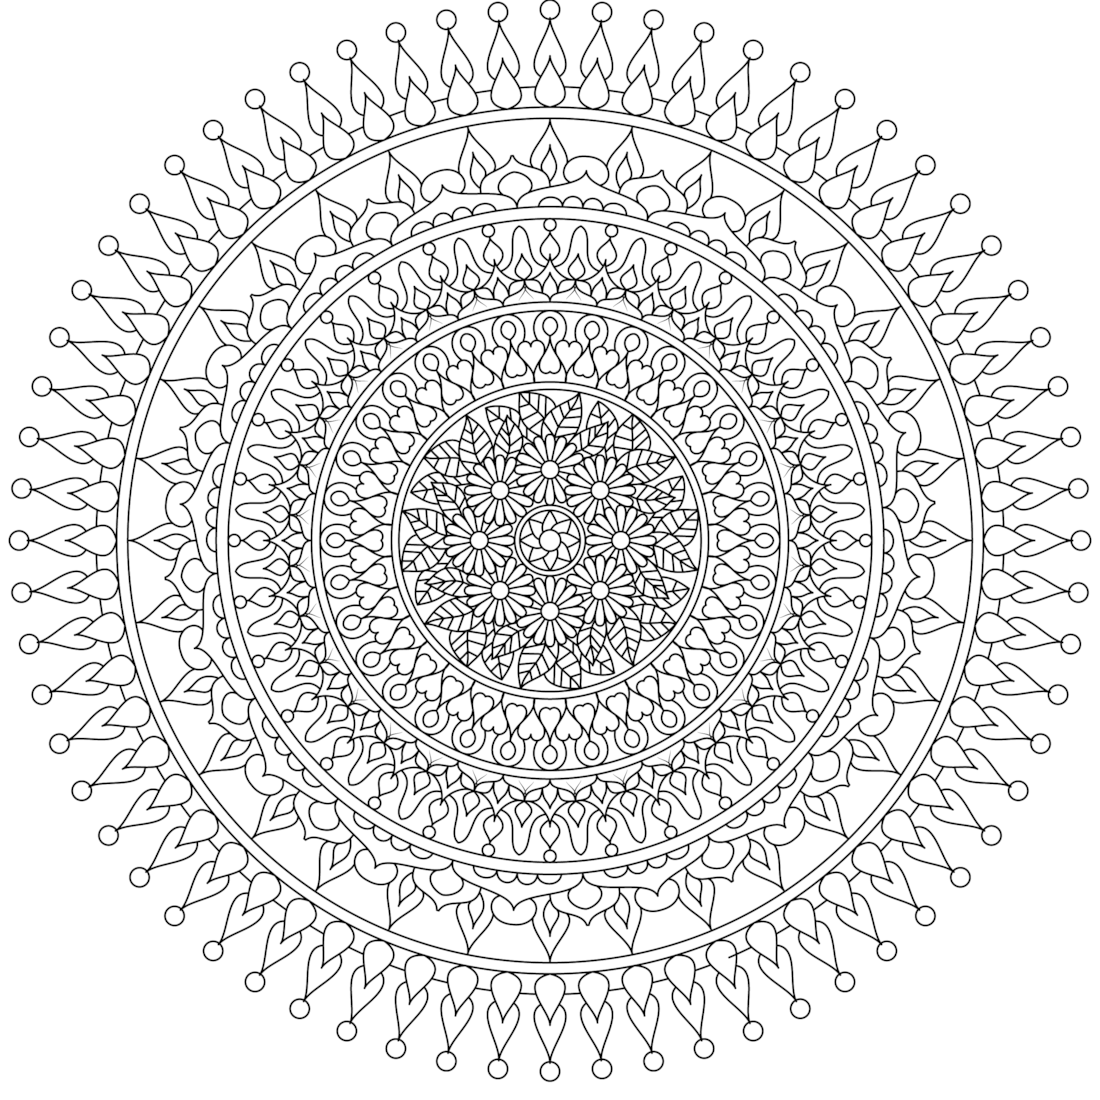 quot Moon Heart quot a beautiful free mandala coloring page you